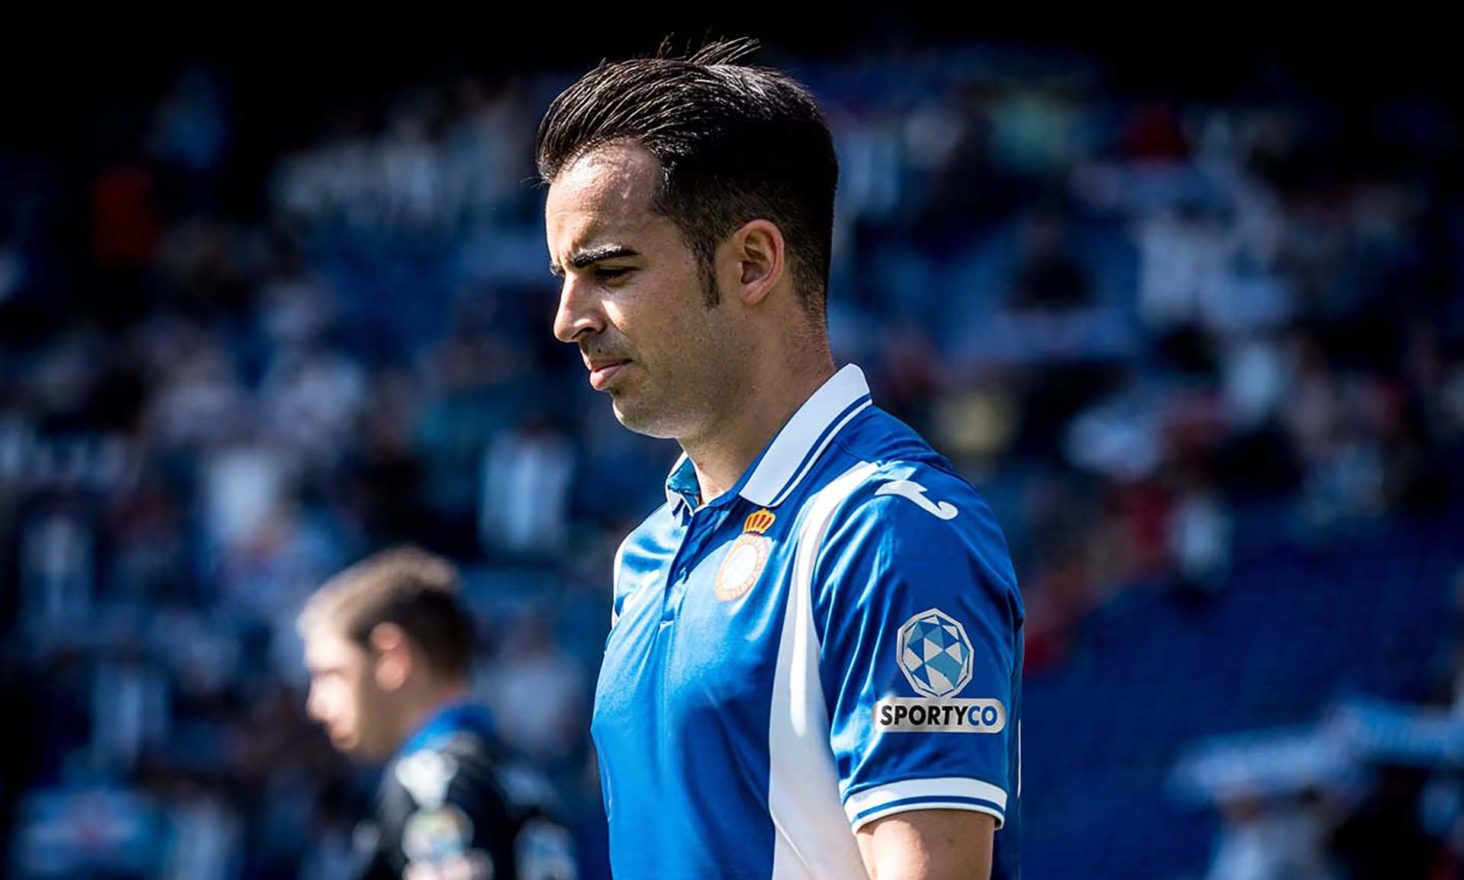 SportyCo Scores Big with RCD Espanyol Sponsorship